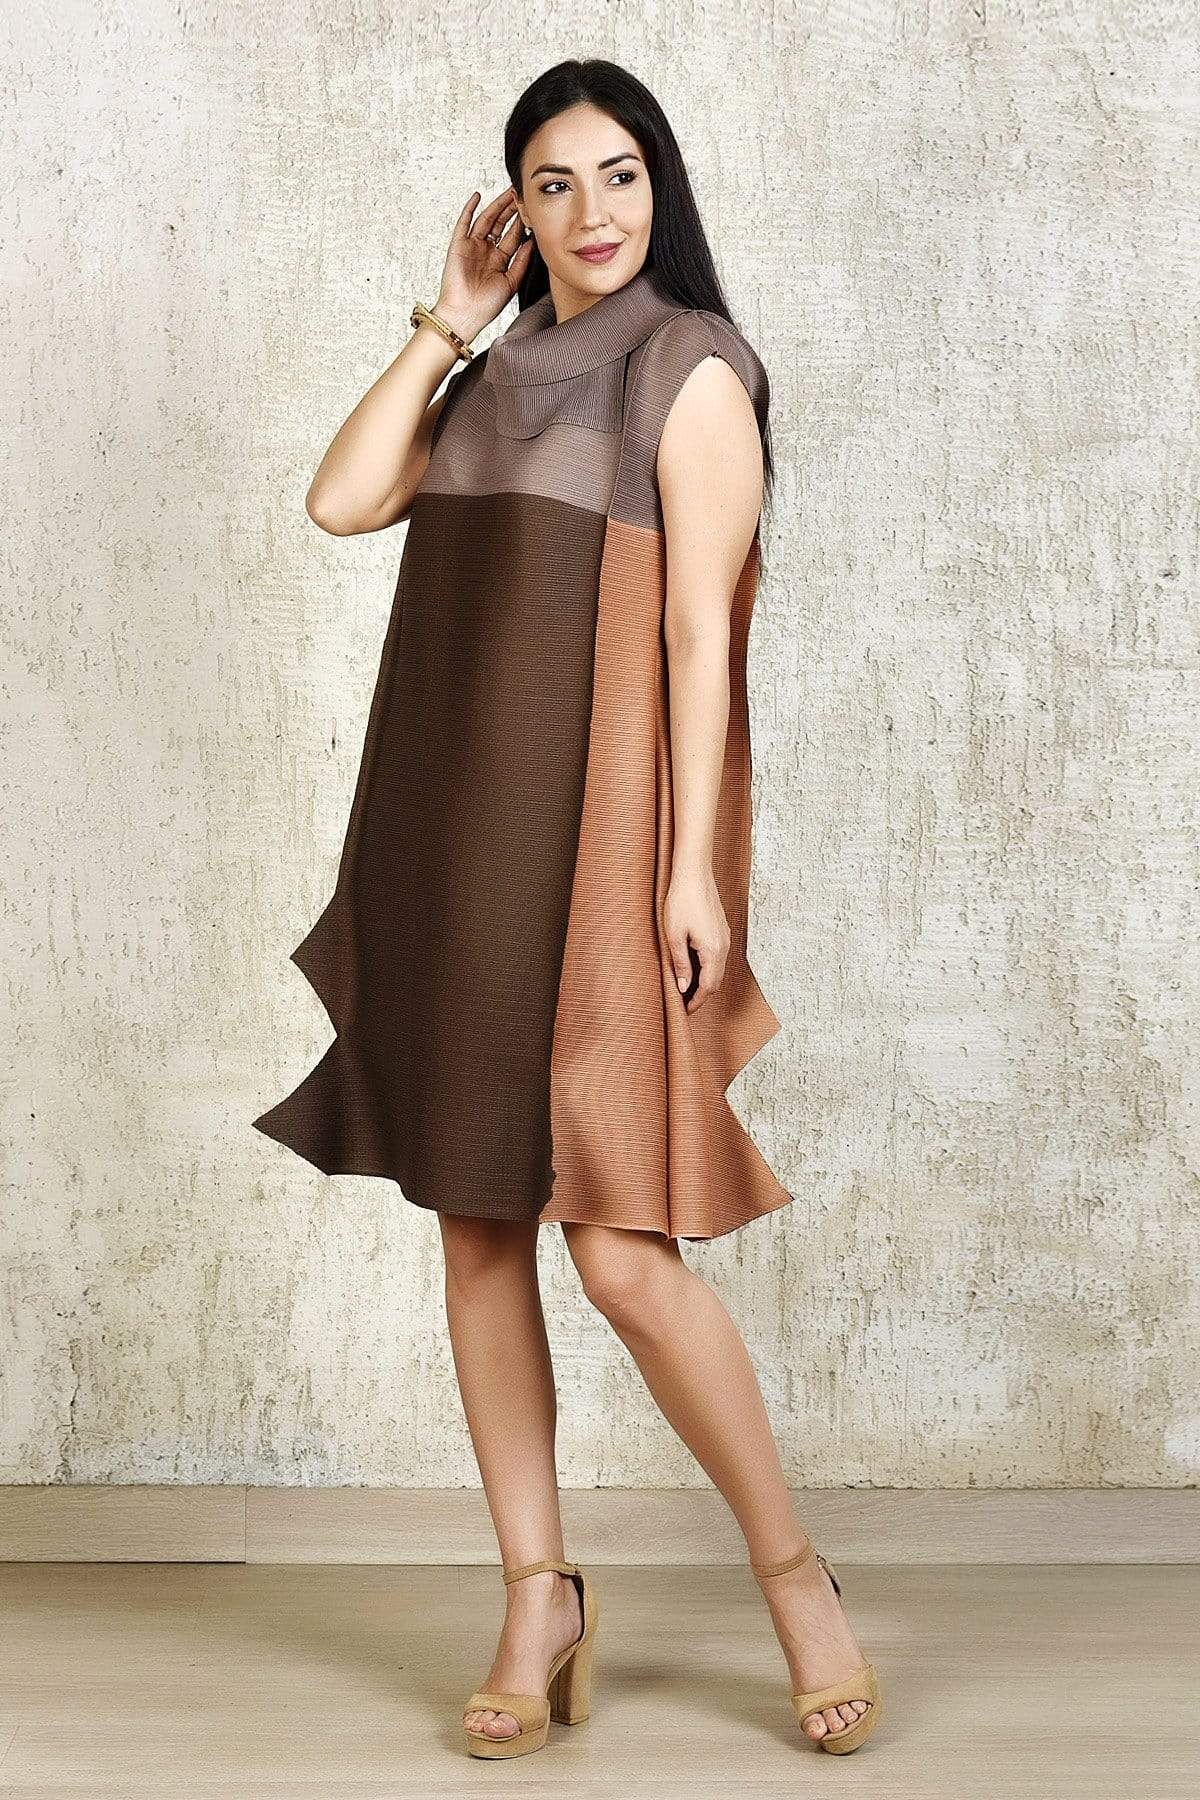 Tasuvure Dresses Origami dress in shades of brown